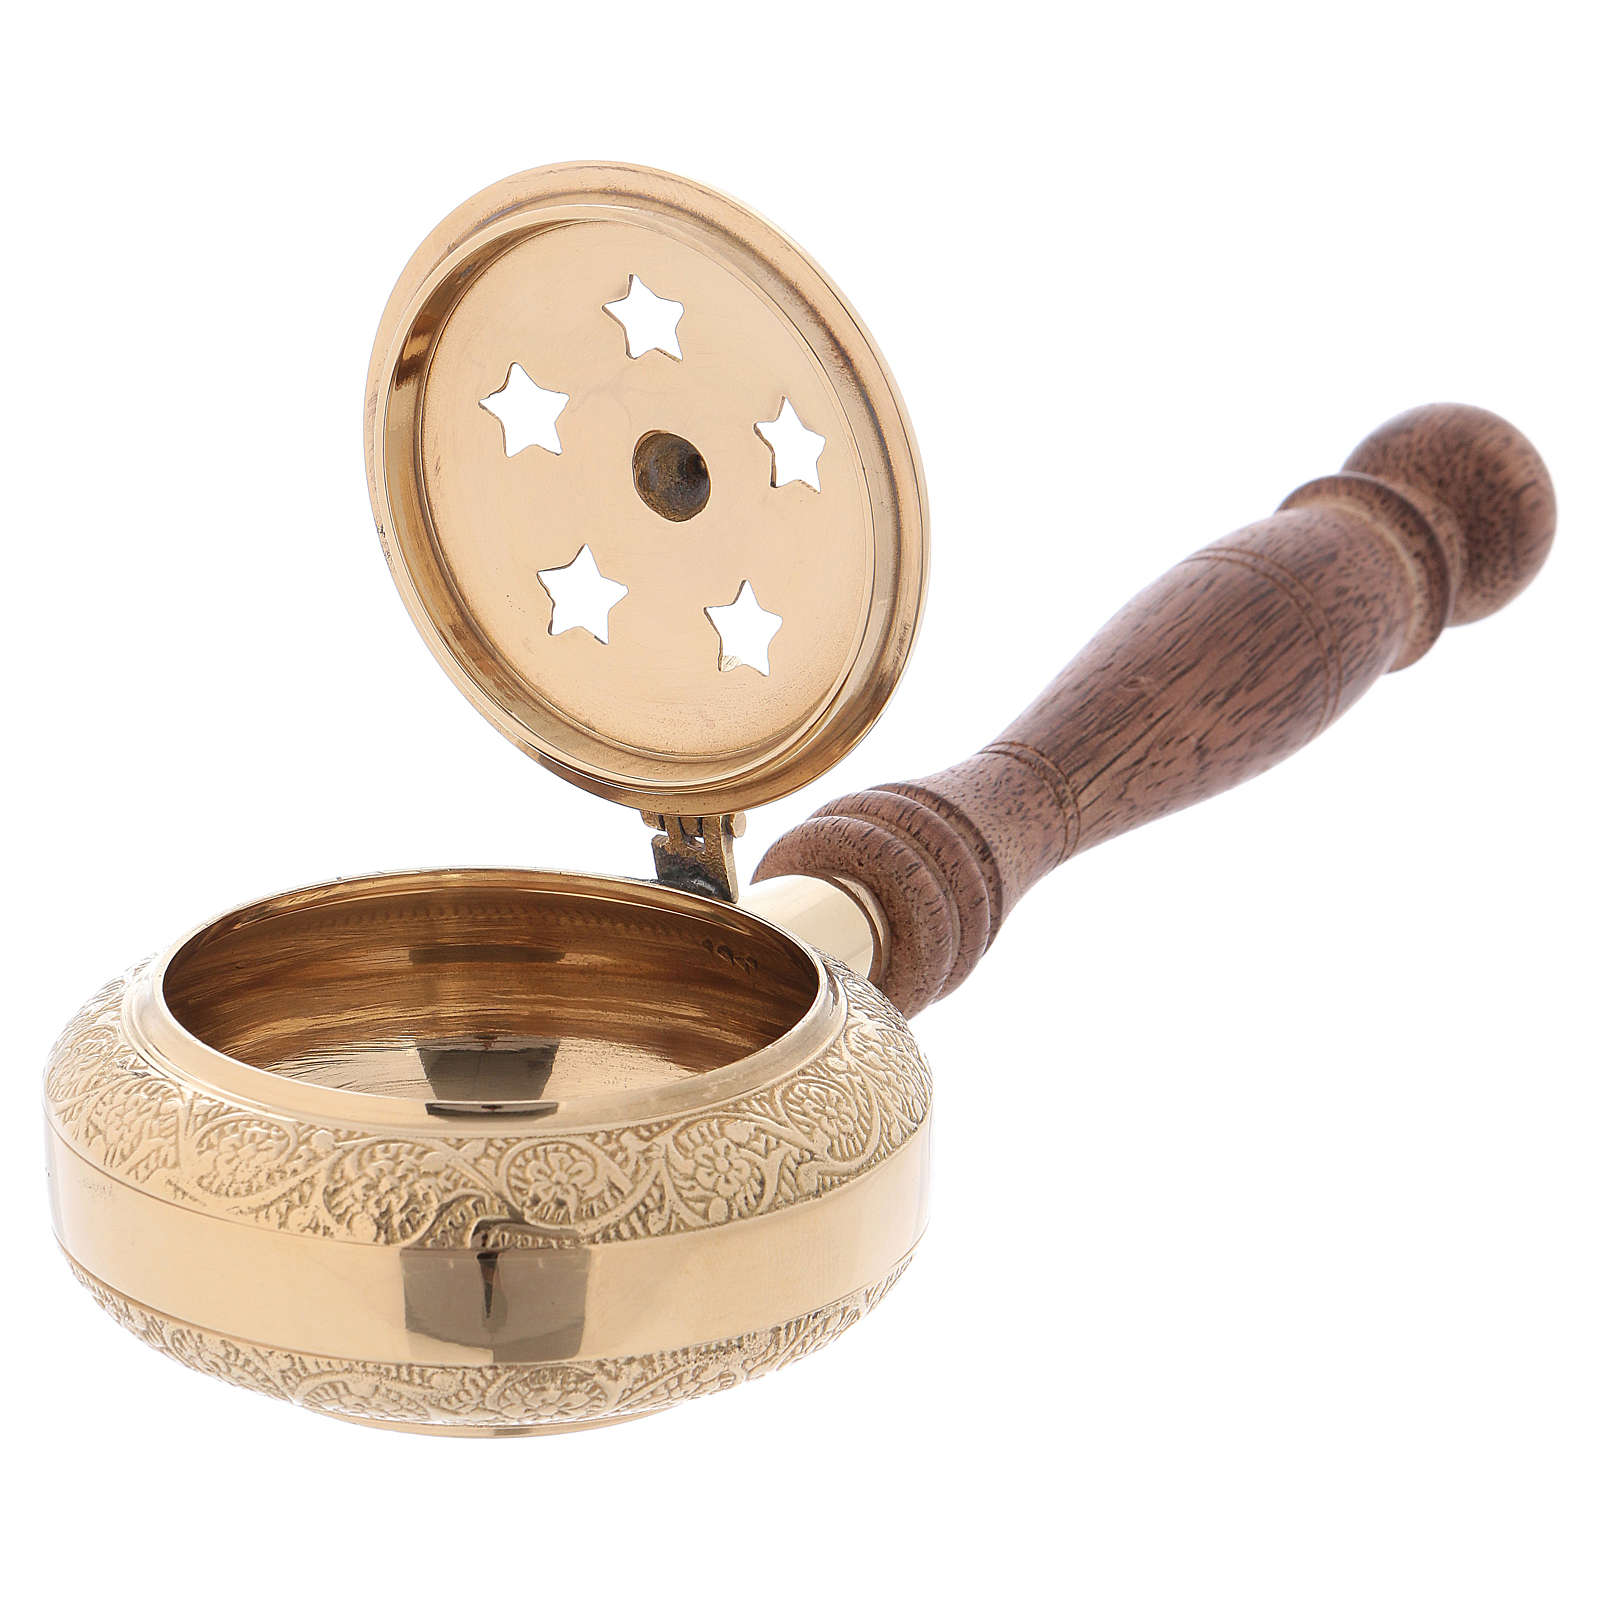 Incense burner in gold-plated brass with handle 3